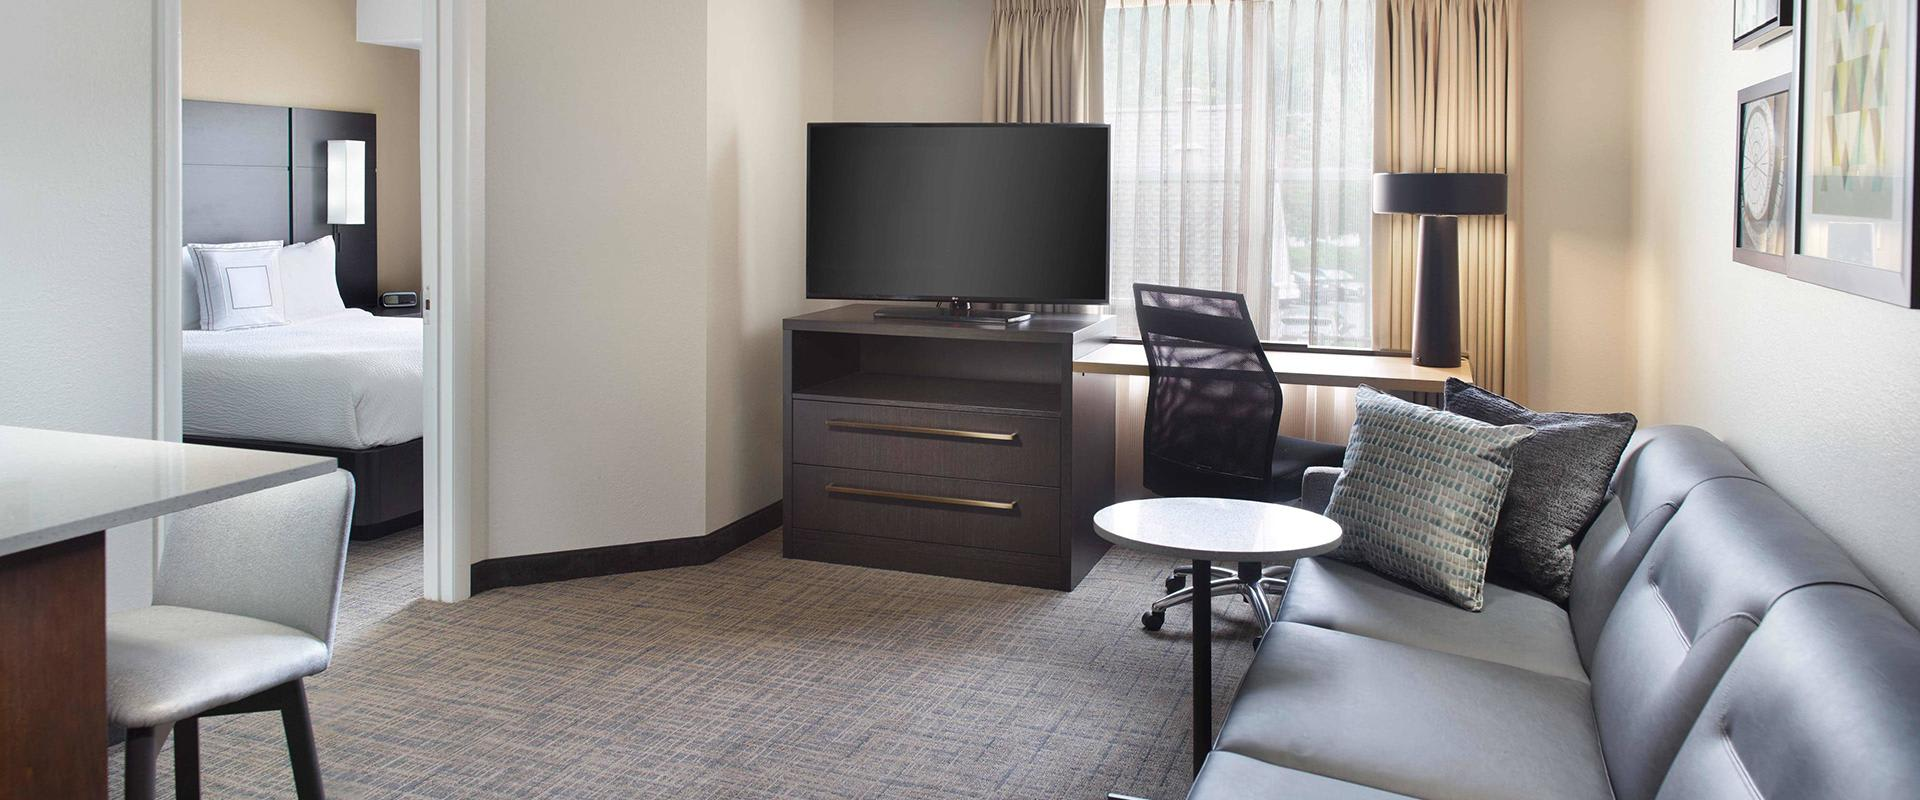 Raleigh Cary Hotel Suite